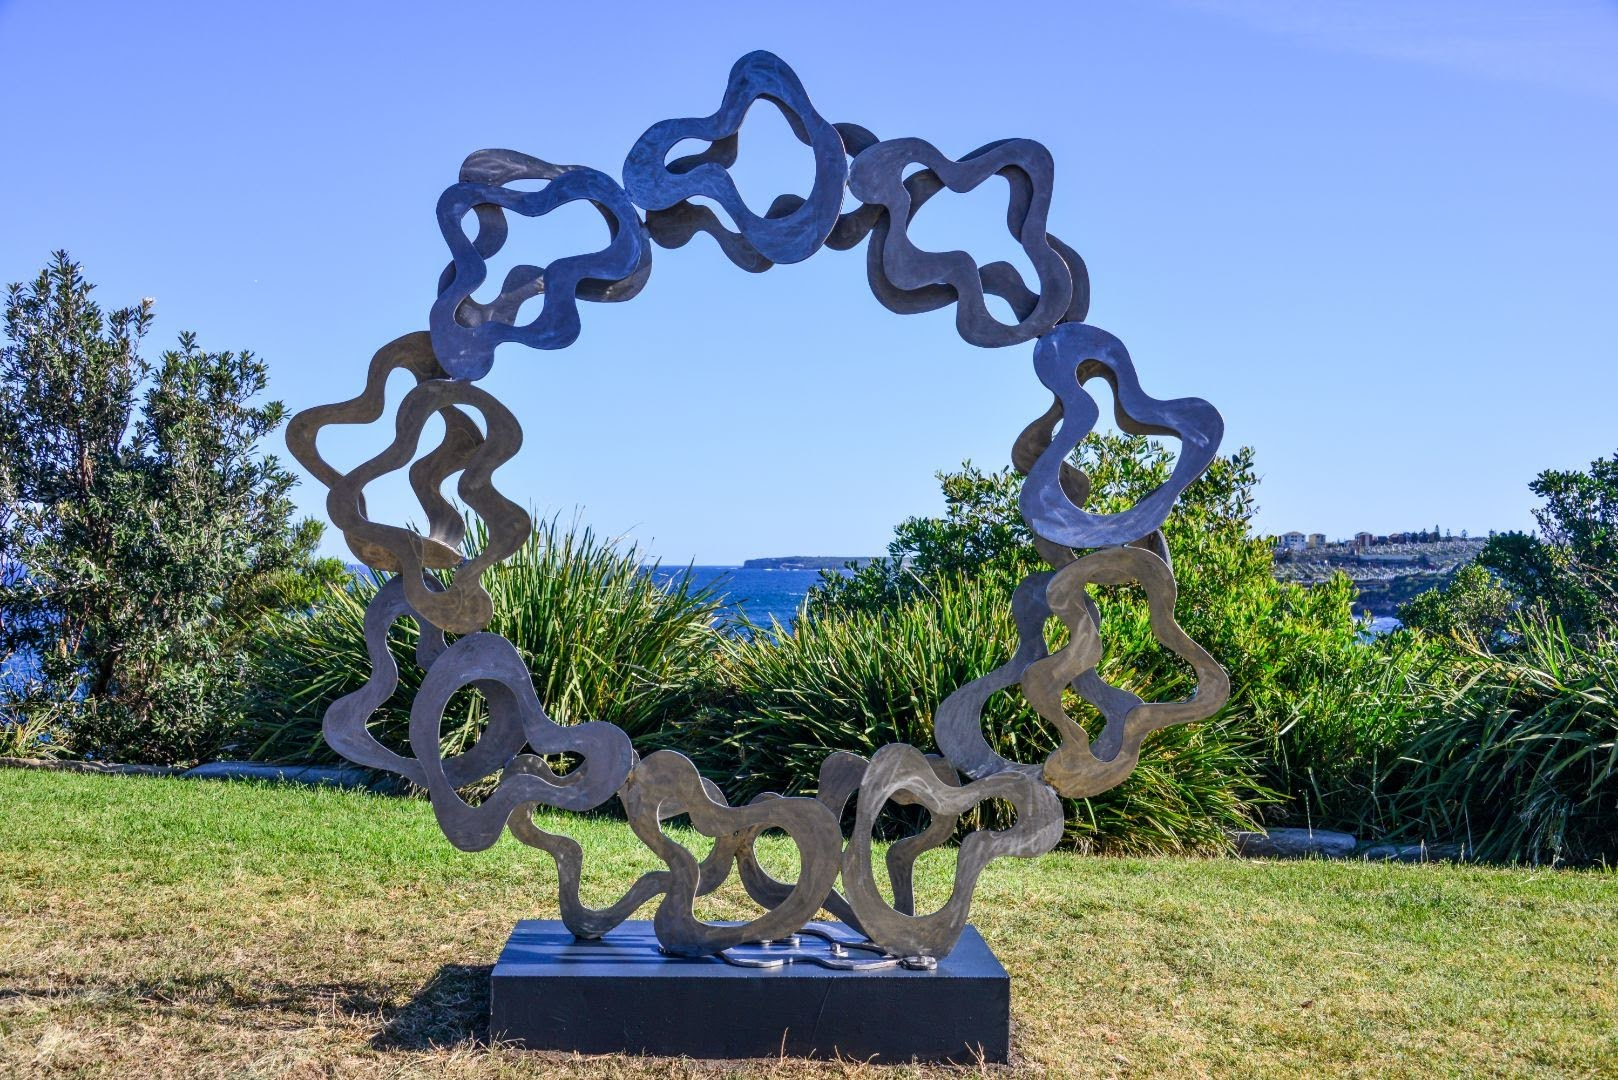 Paul bacos sculpture stainless steel